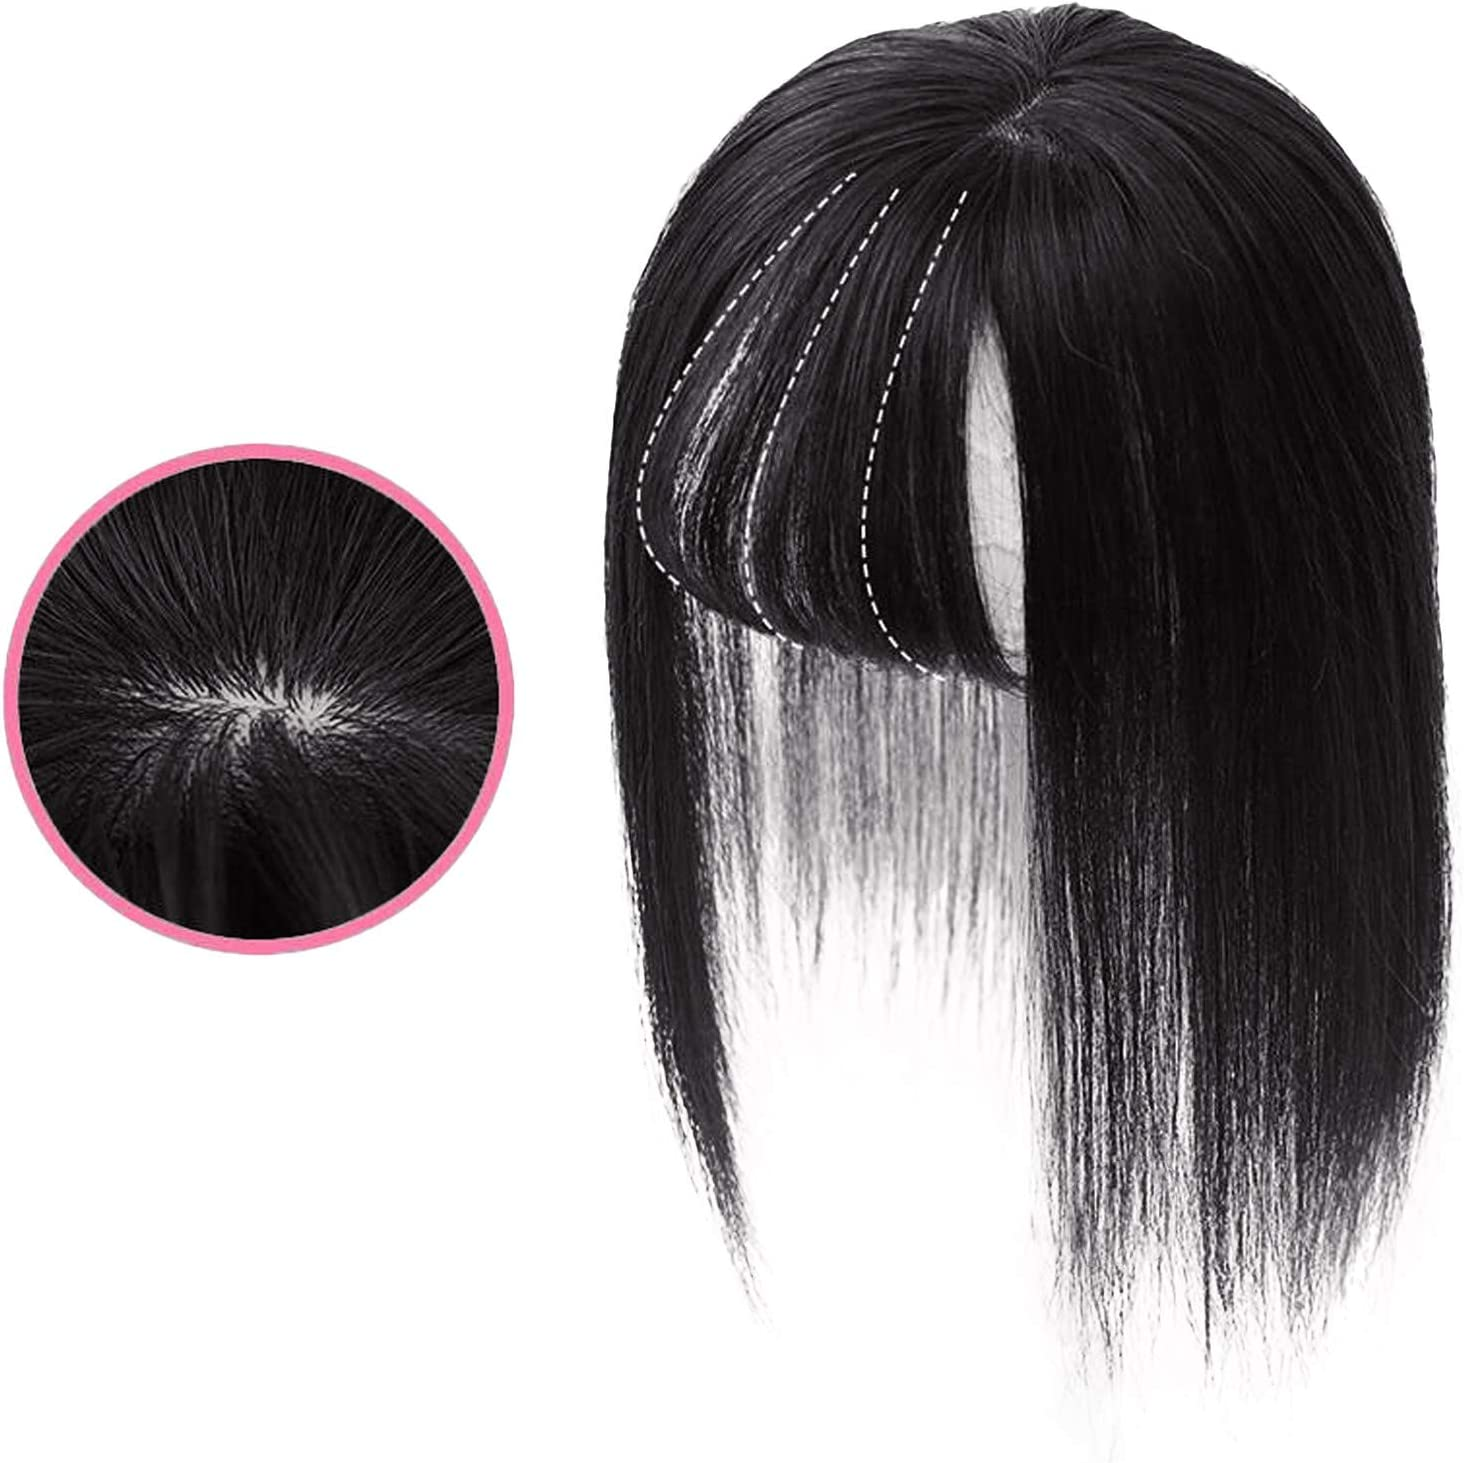 Ussuma 9.8 Inches Women's Breathable with Seamless Credence Wig Invisible Max 83% OFF